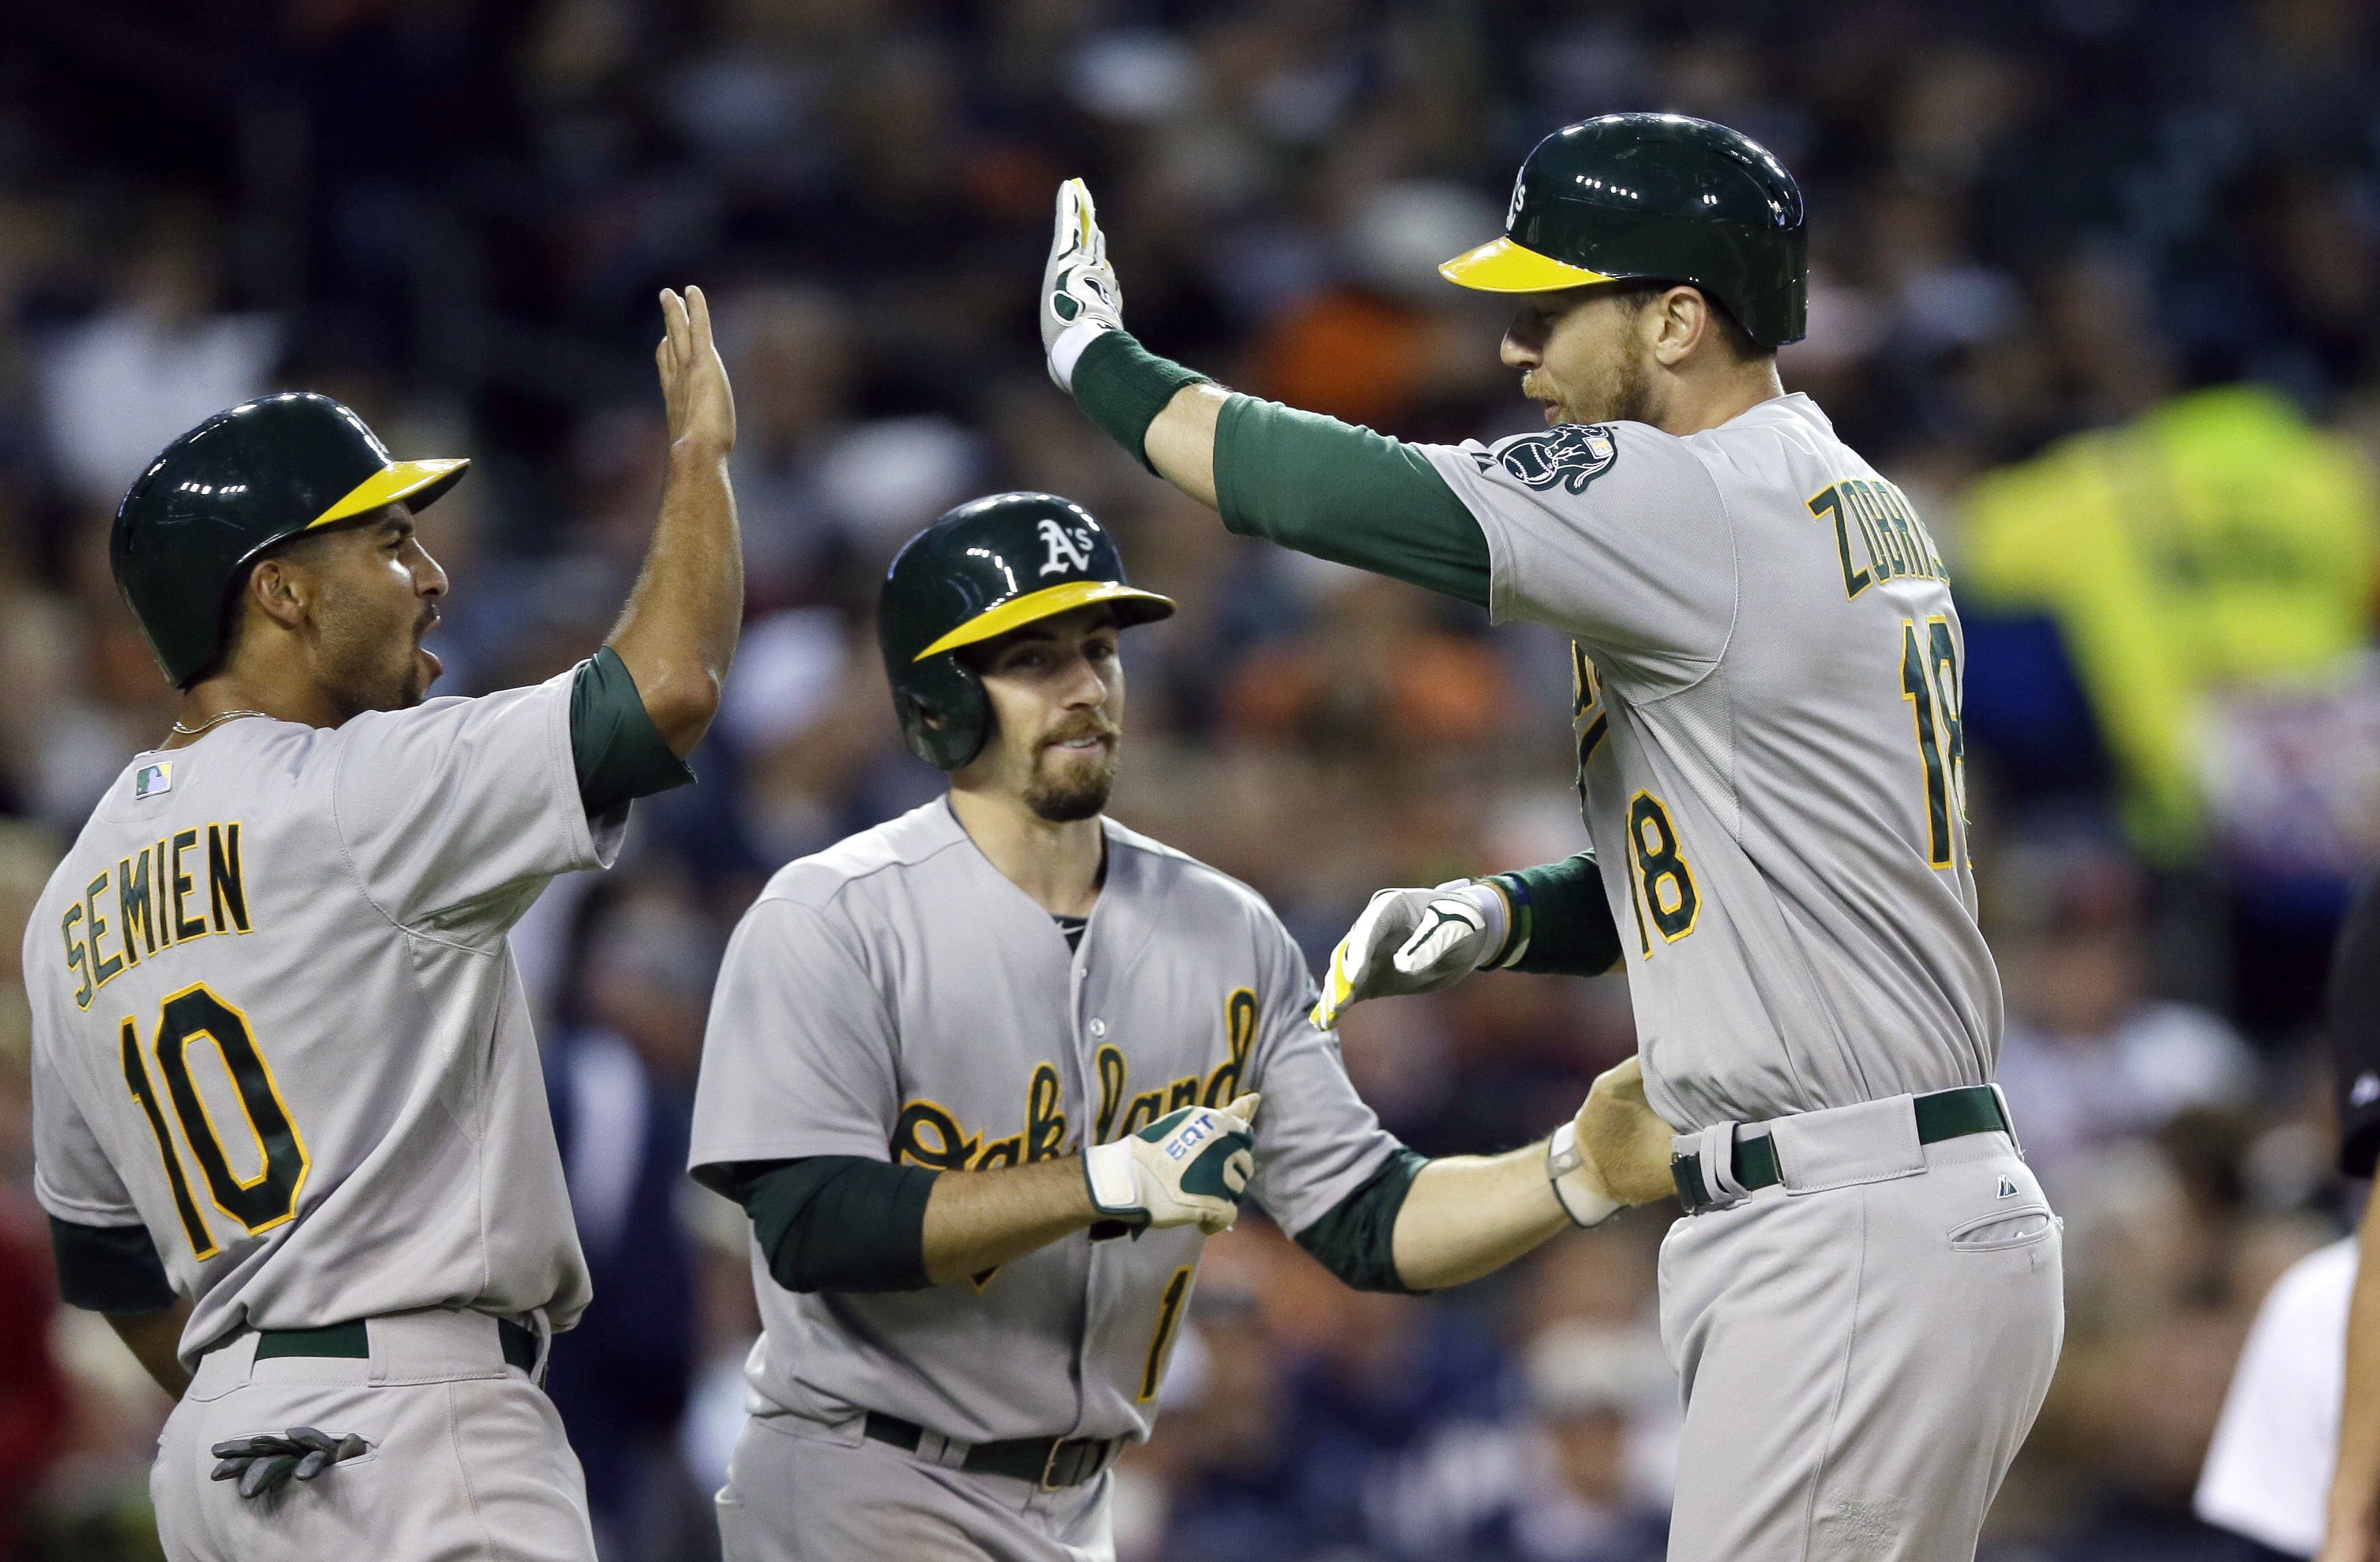 Oakland Athletics' Ben Zobrist, right, is greeted by teammates Marcus Semien (10) and Billy Burns after they scored on the grand slam by Zobrist off Detroit Tigers relief pitcher Angel Nesbitt during the seventh inning of a baseball game, Tuesday, June 2,